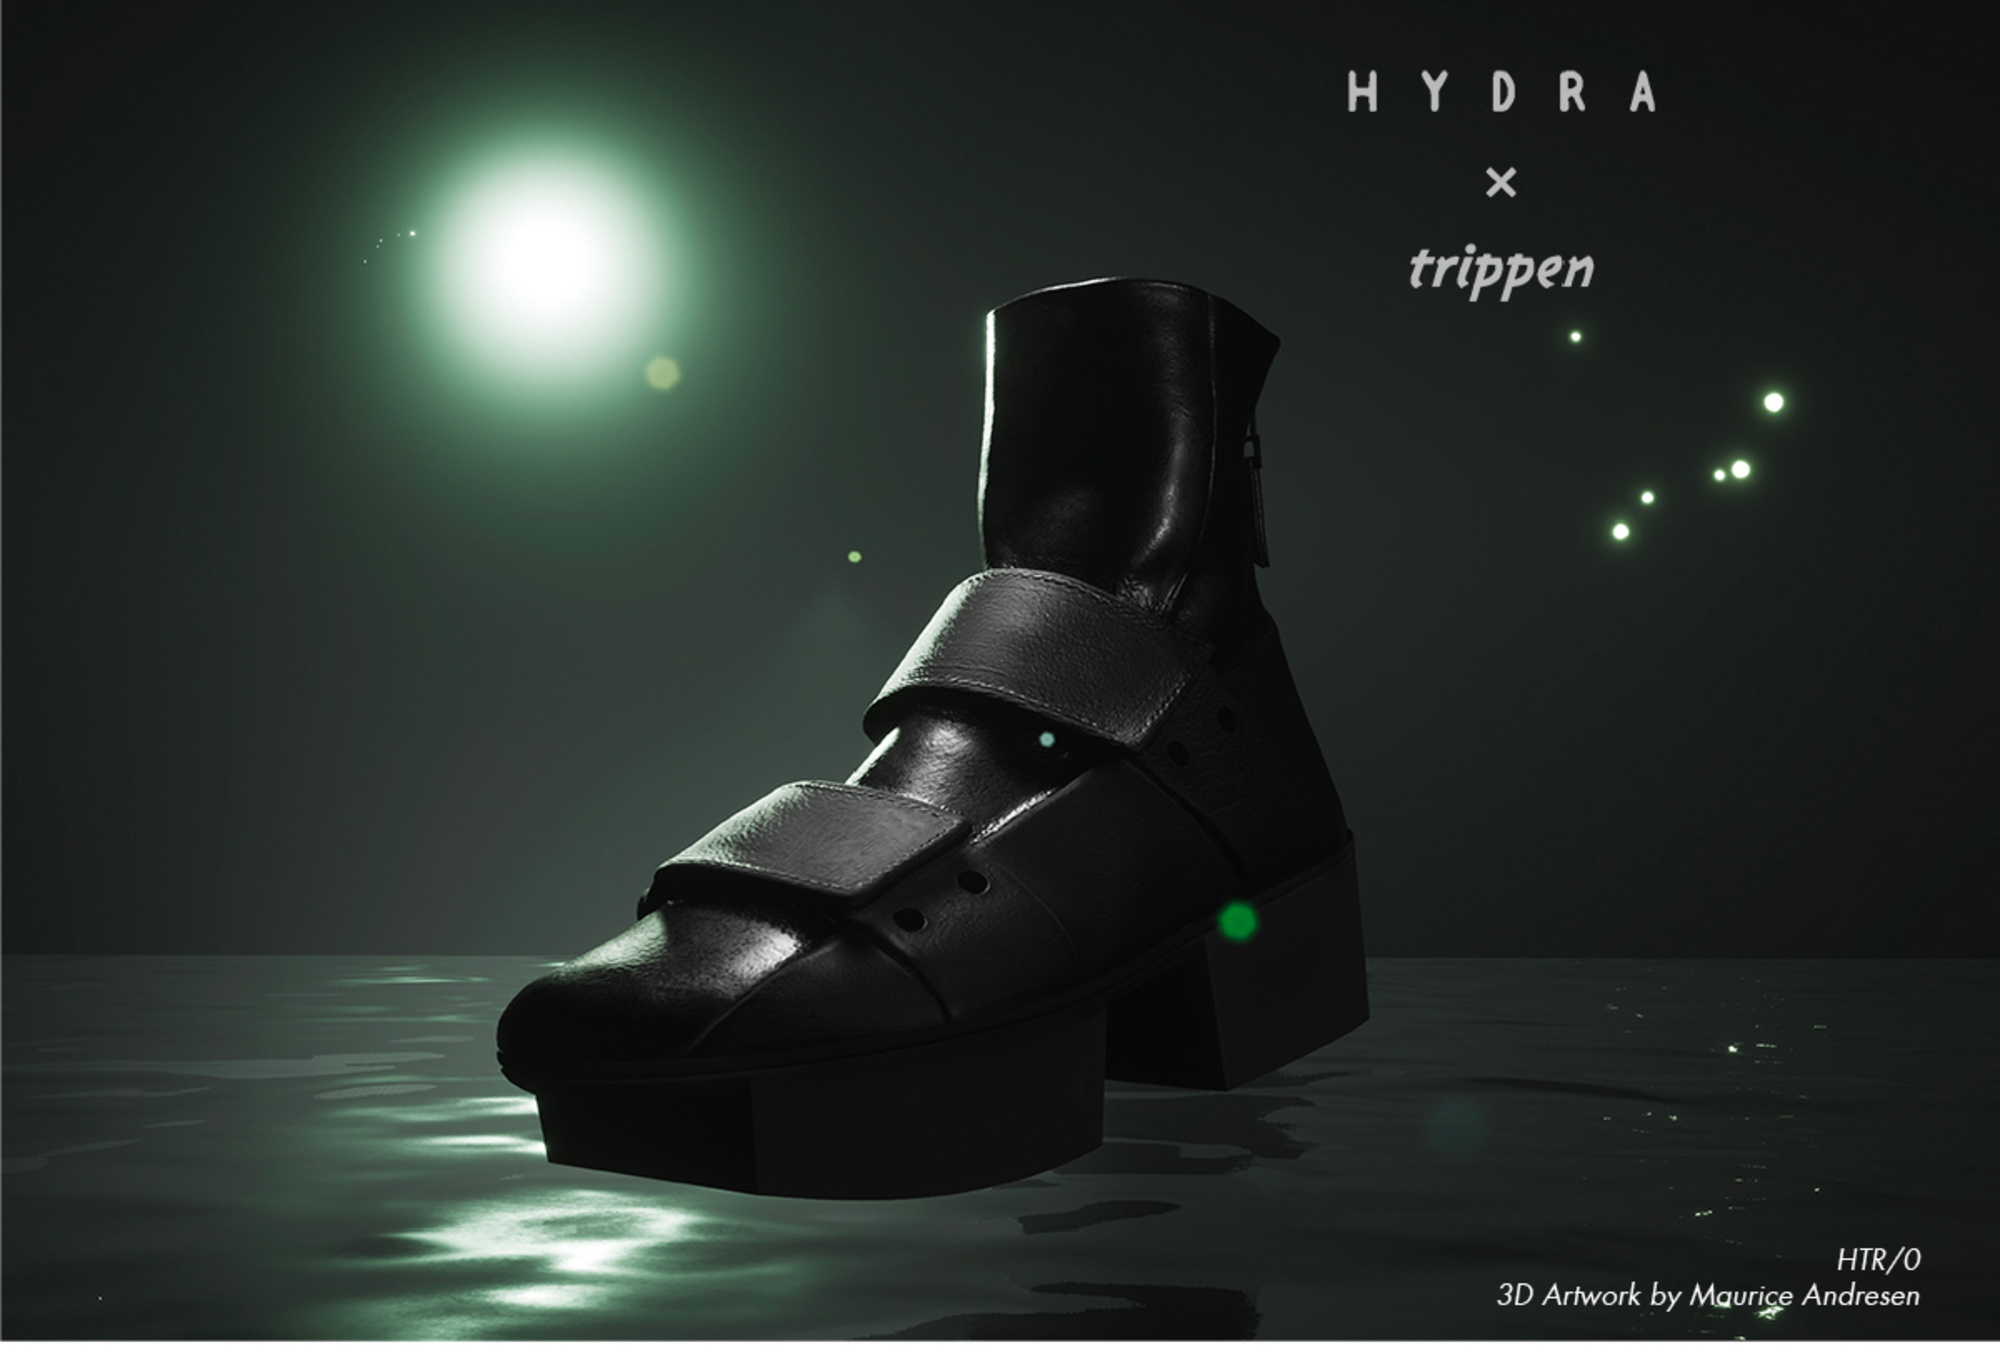 Hydra Trippen Collaboration shoes